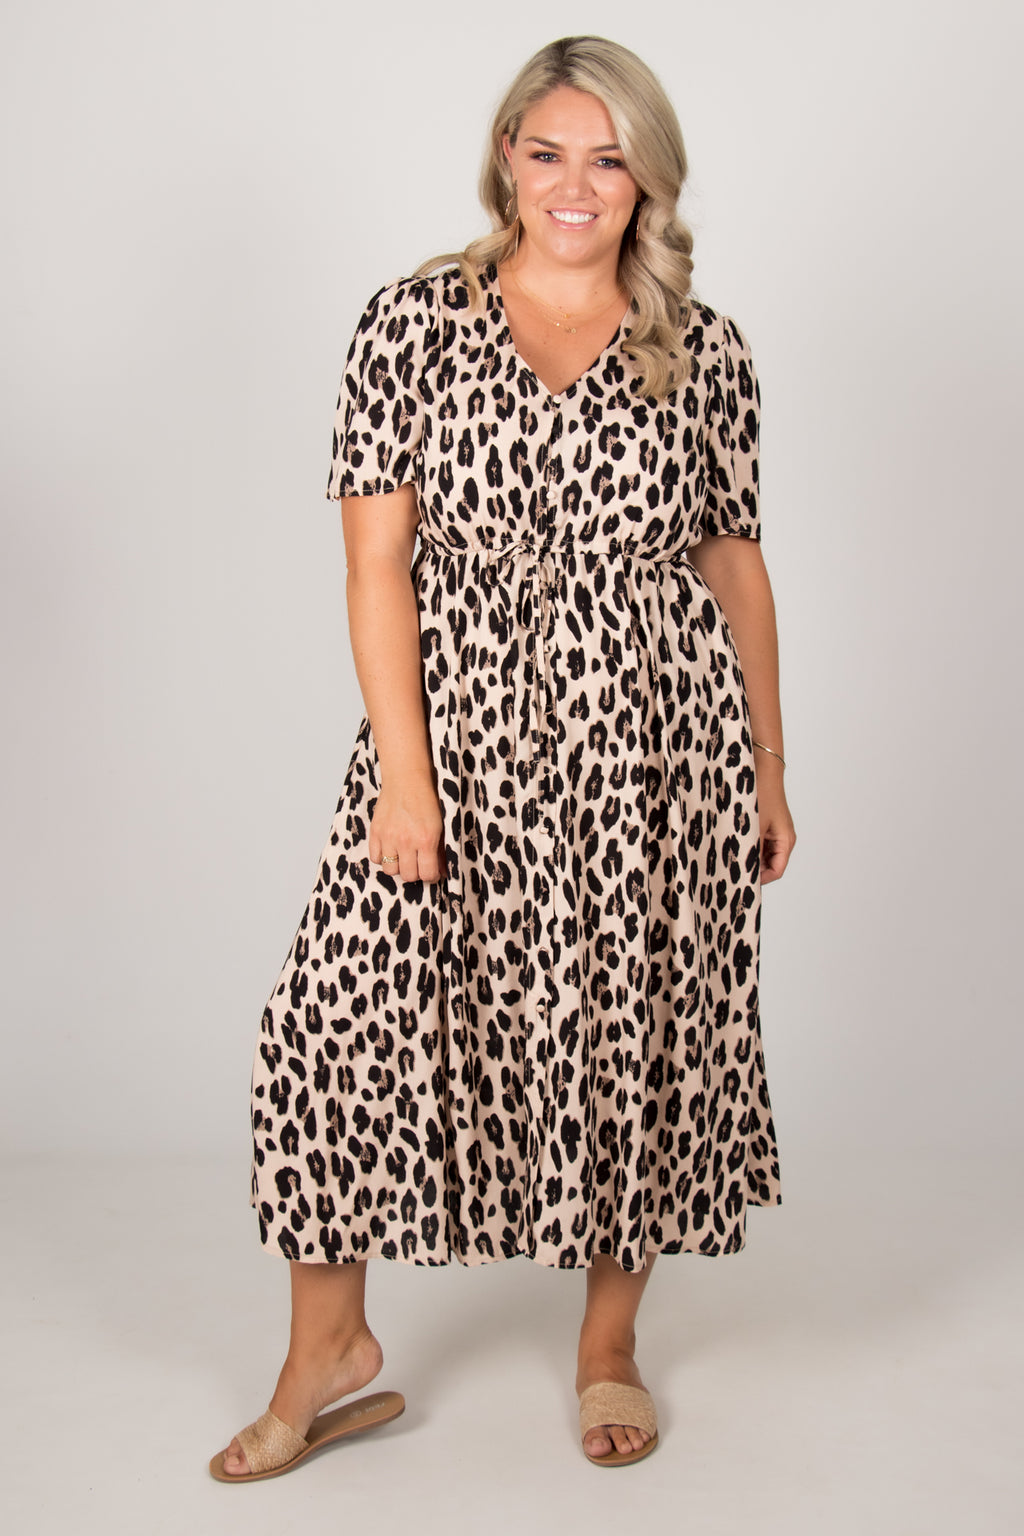 Teliah Dress in Beige/Leopard